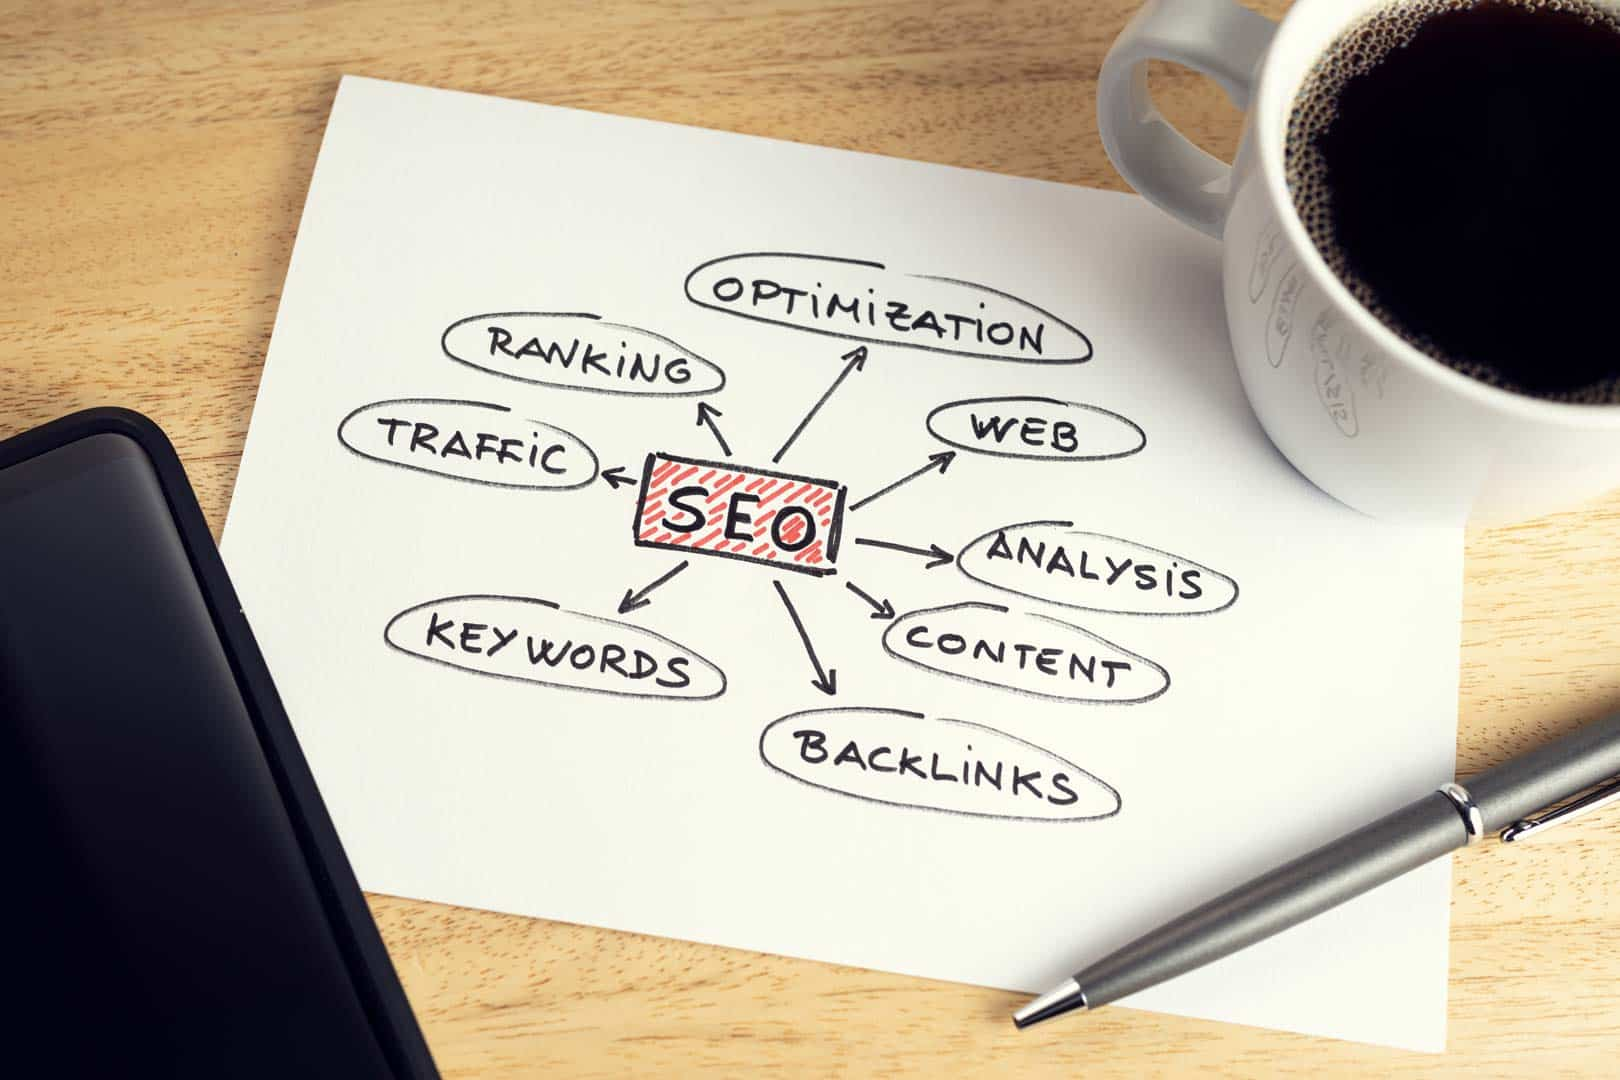 SEO Birmingham | What Is SEO and Why Do I Need It?